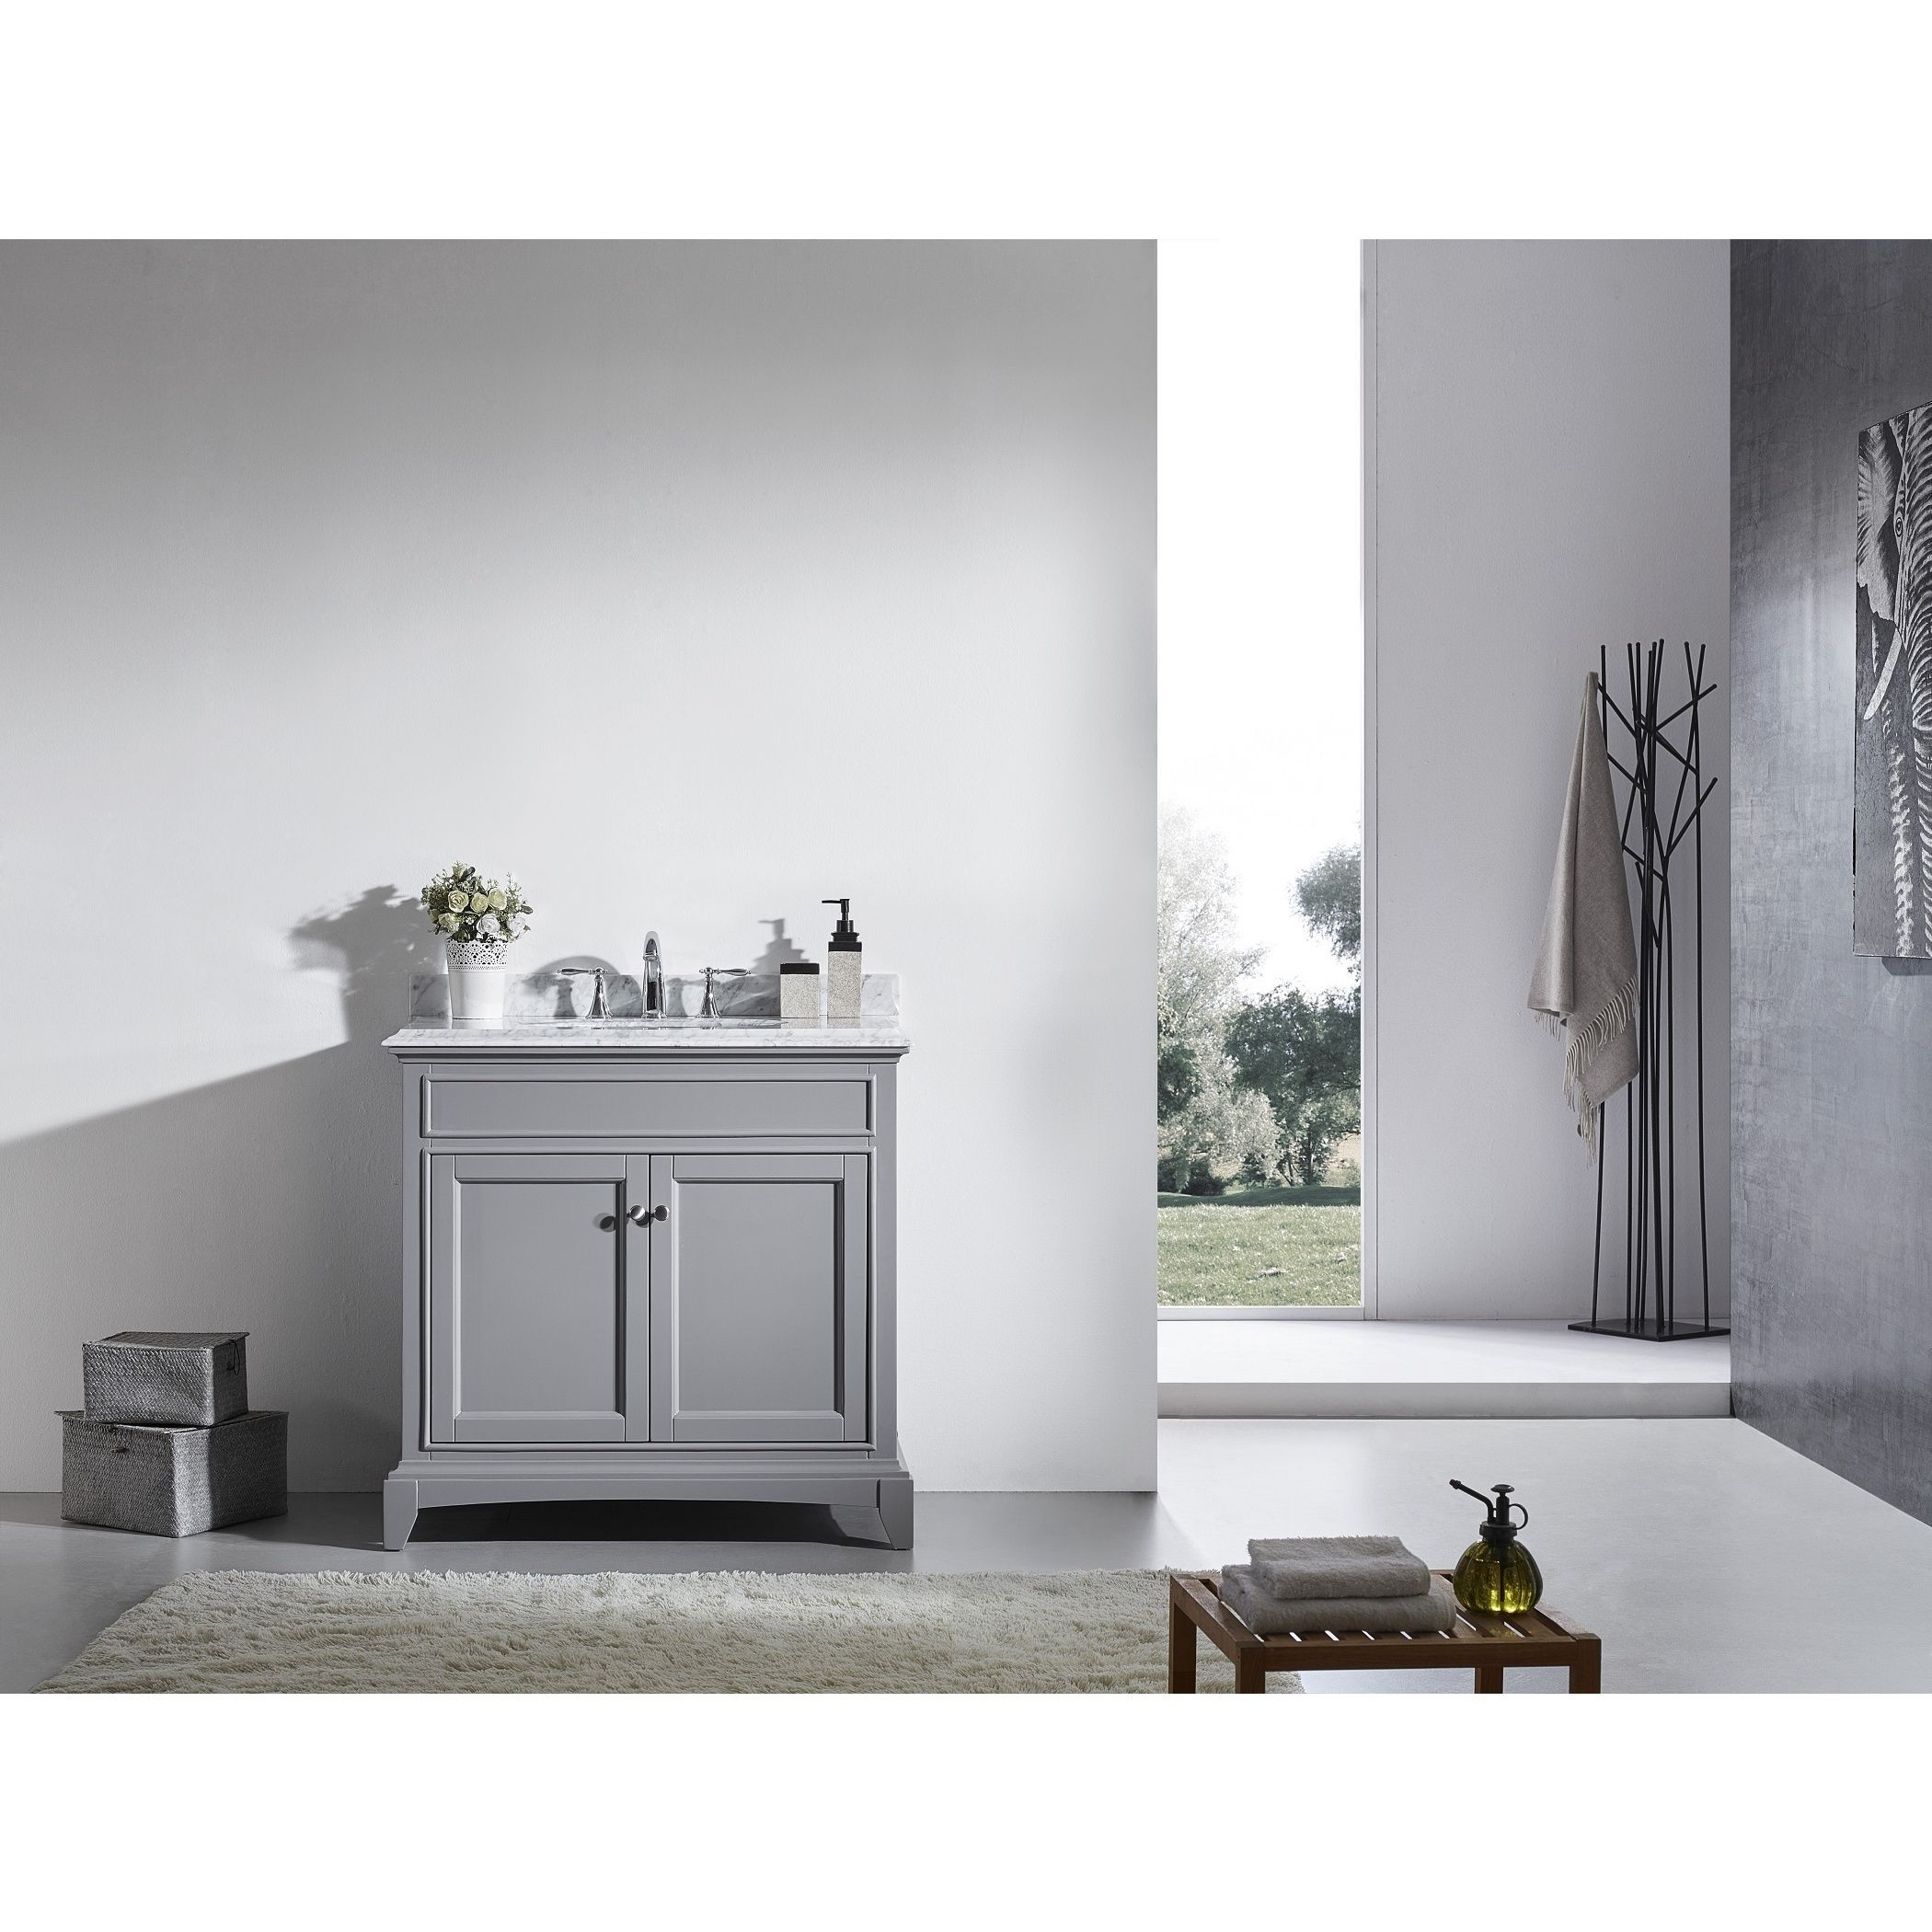 The Eviva Elite Stamford® 36-inch Gray Bathroom Vanity features a Double OG White Italian Carrera Marble counter-top that accents the bathroom cabinet with a very luxurious look.